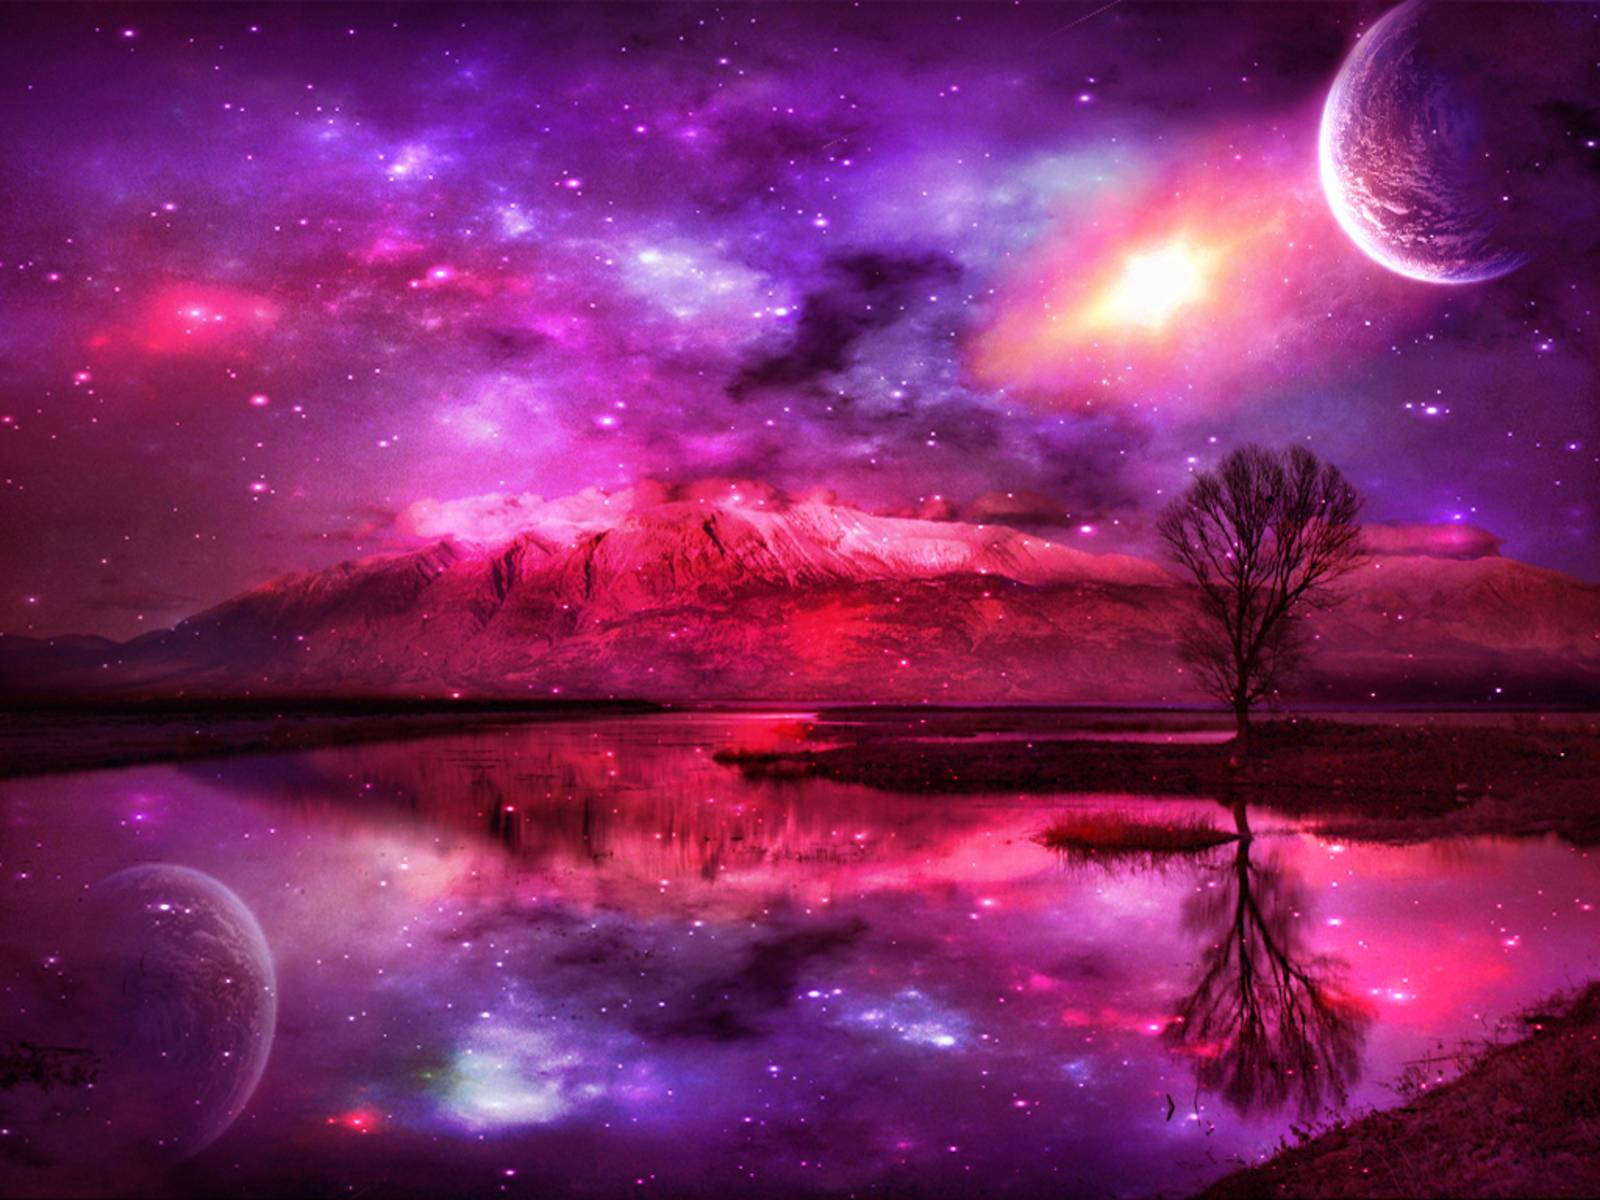 Fantasy space landscapes